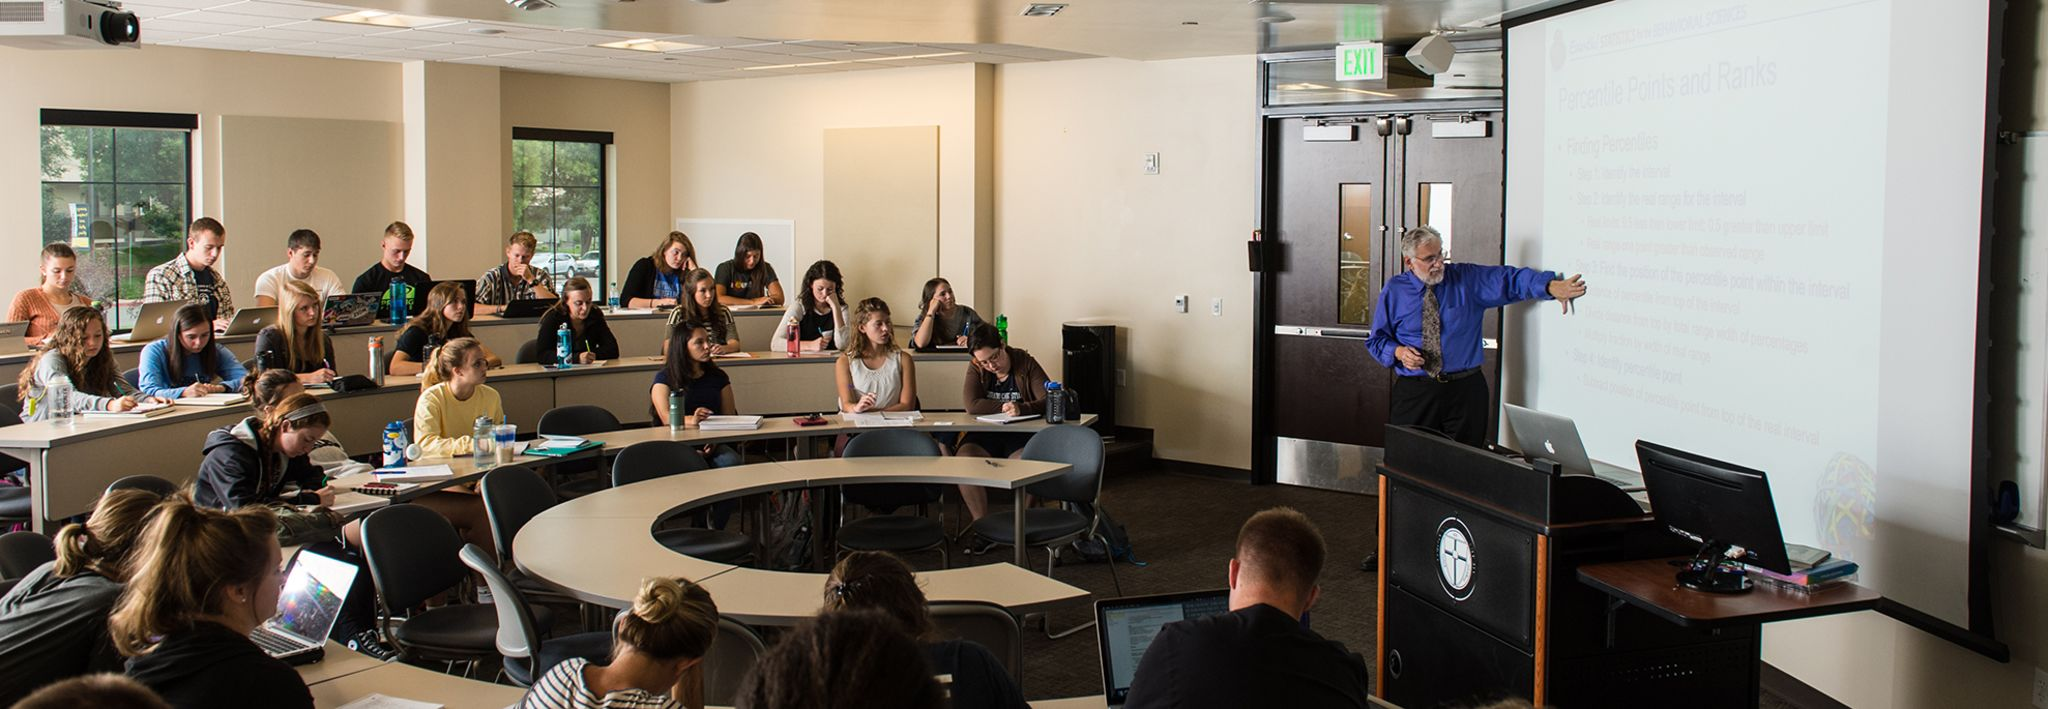 Undergraduate students sitting in class at CCU's Lakewood campus.